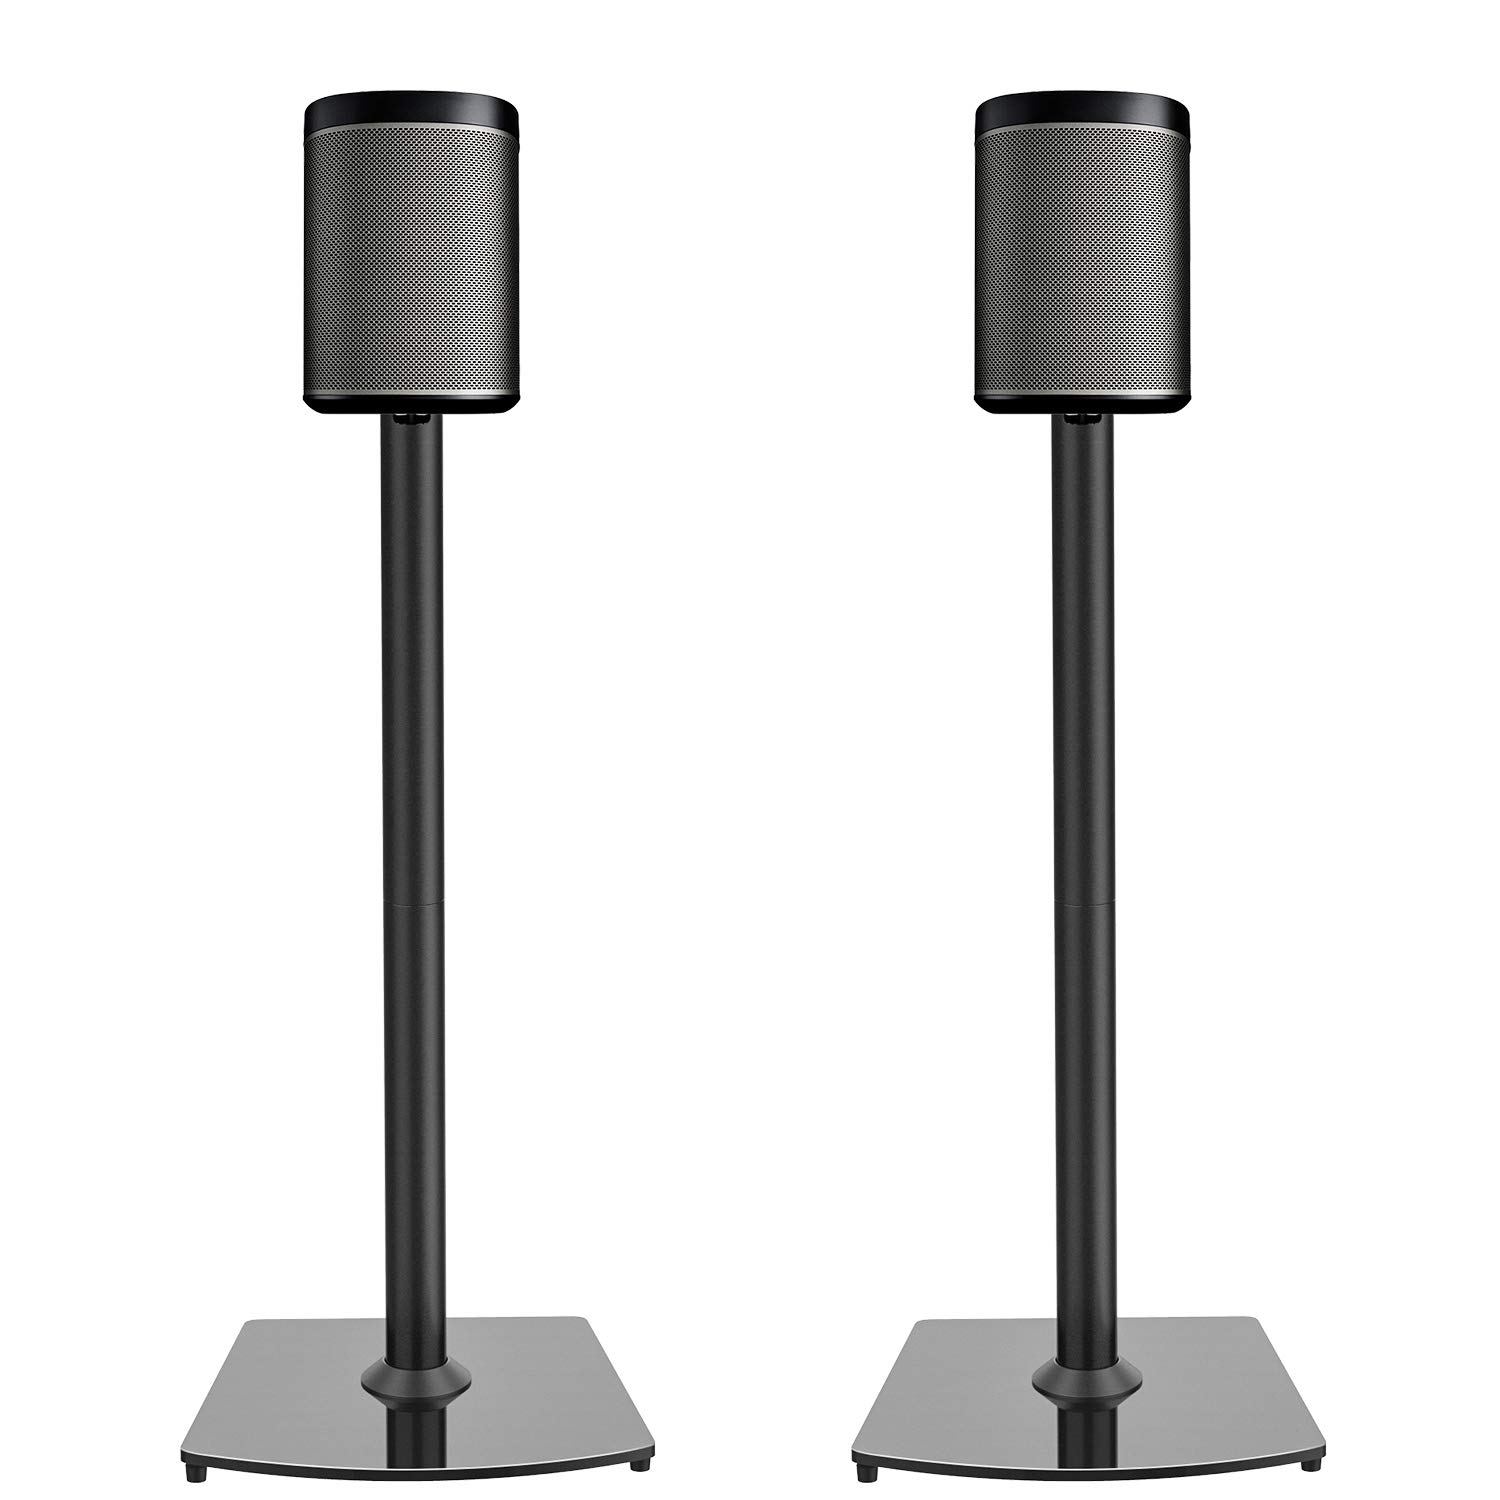 PERLESMITH Sonos Speaker Stands- for Sonos One, One SL, Play:1, Play:3 Bookshelf Speaker-Heavy Duty Floor Stands with Cable Management-1 Pair by PERLESMITH